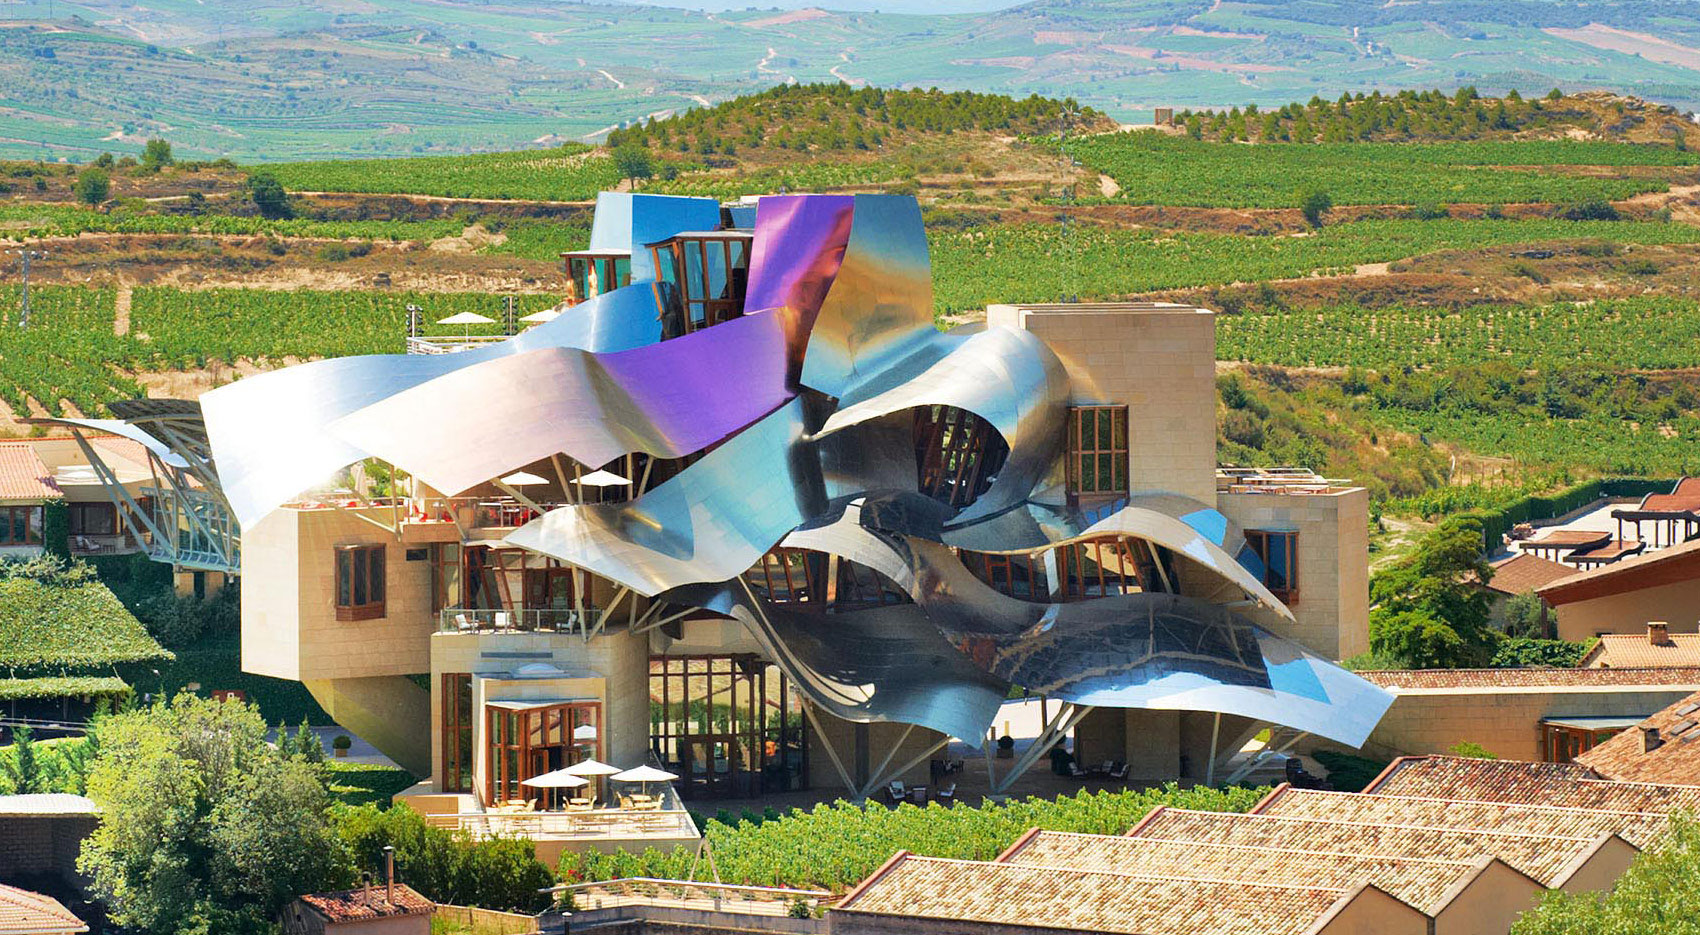 Marqués-de-Riscal-Vineyard-Hotel Modern architects you should know and their great work